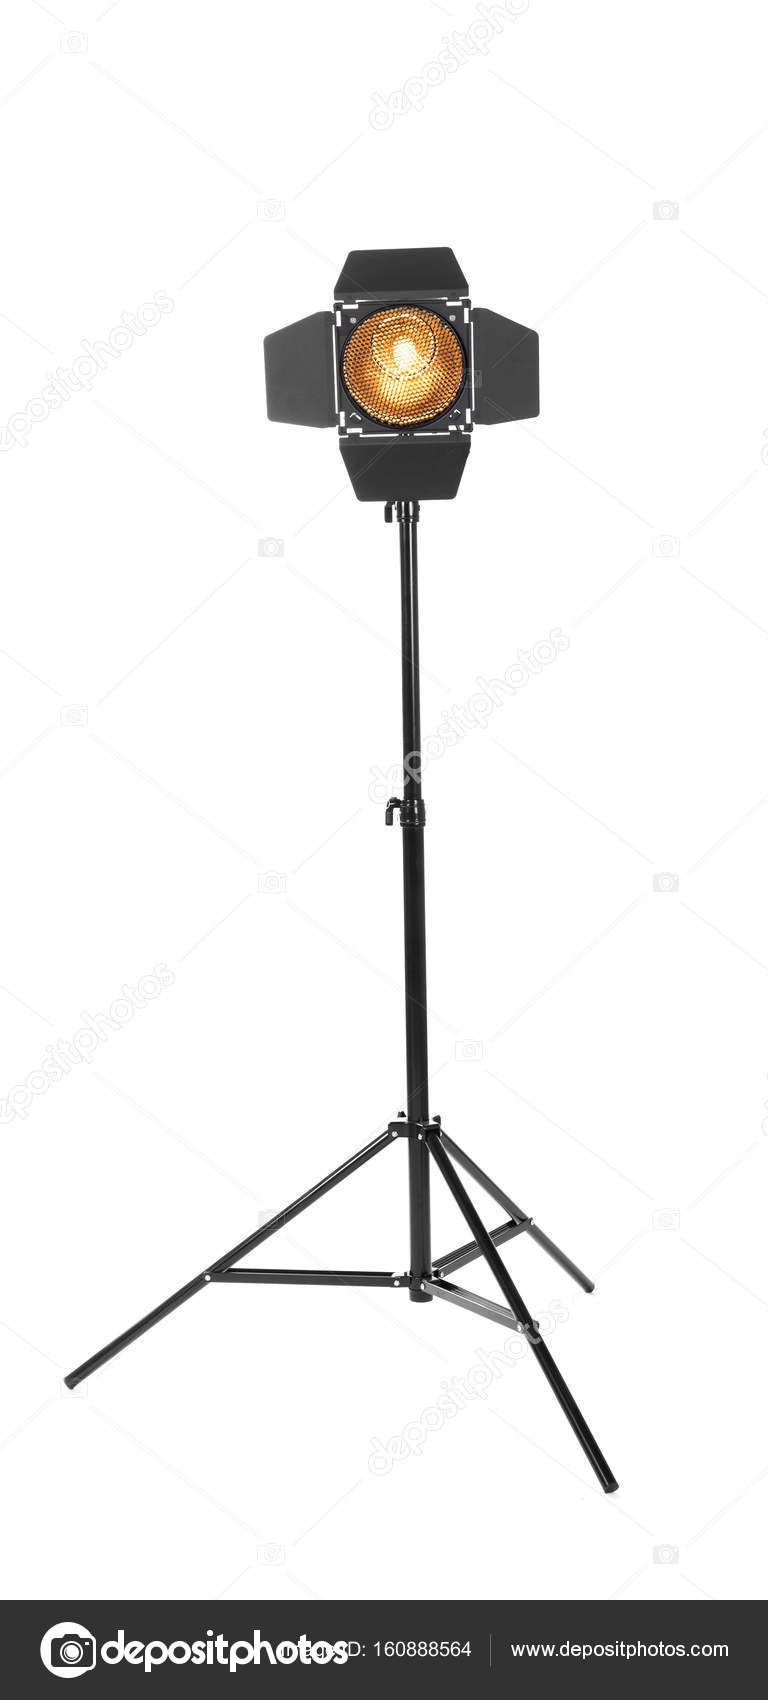 Black studio lighting on a tripod stand isolated on the white background. Photo-studio with lighting equipment. The photo of the honeycomb is glowing.  sc 1 st  Depositphotos & Spot light photography equipment. Studio lighting on a tripod stand ...